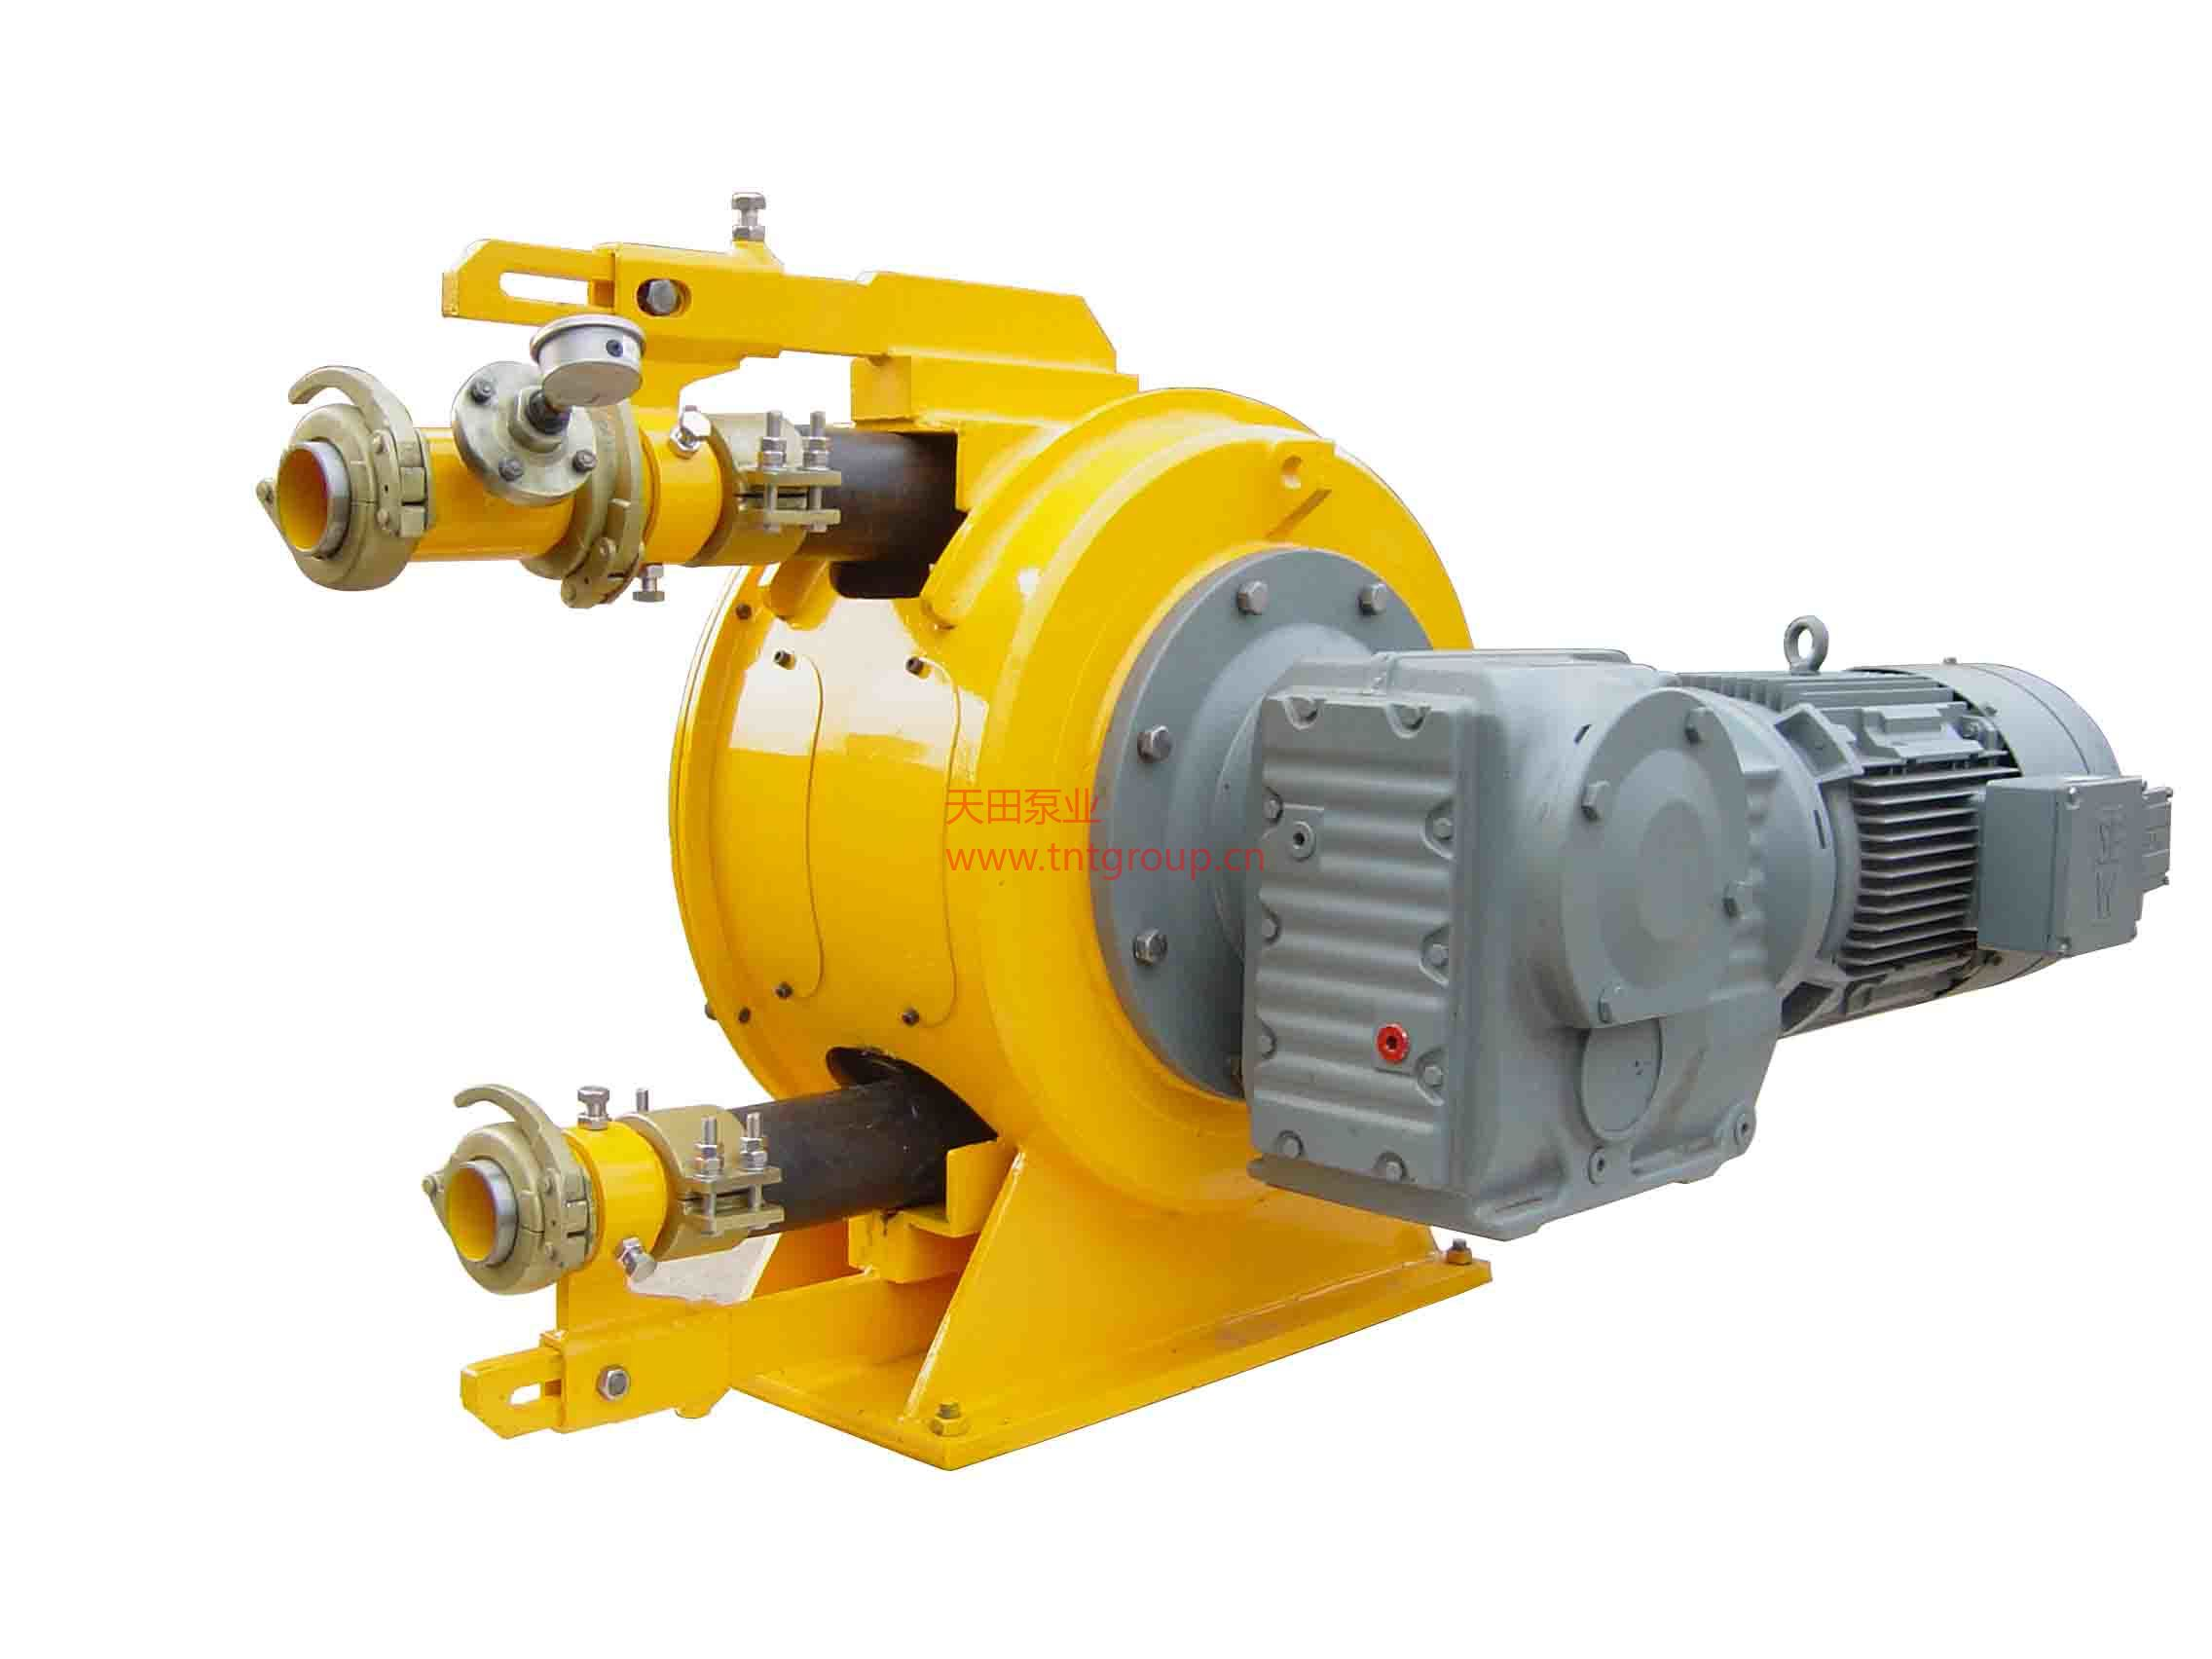 rh-series-hose-pump-11725.jpg